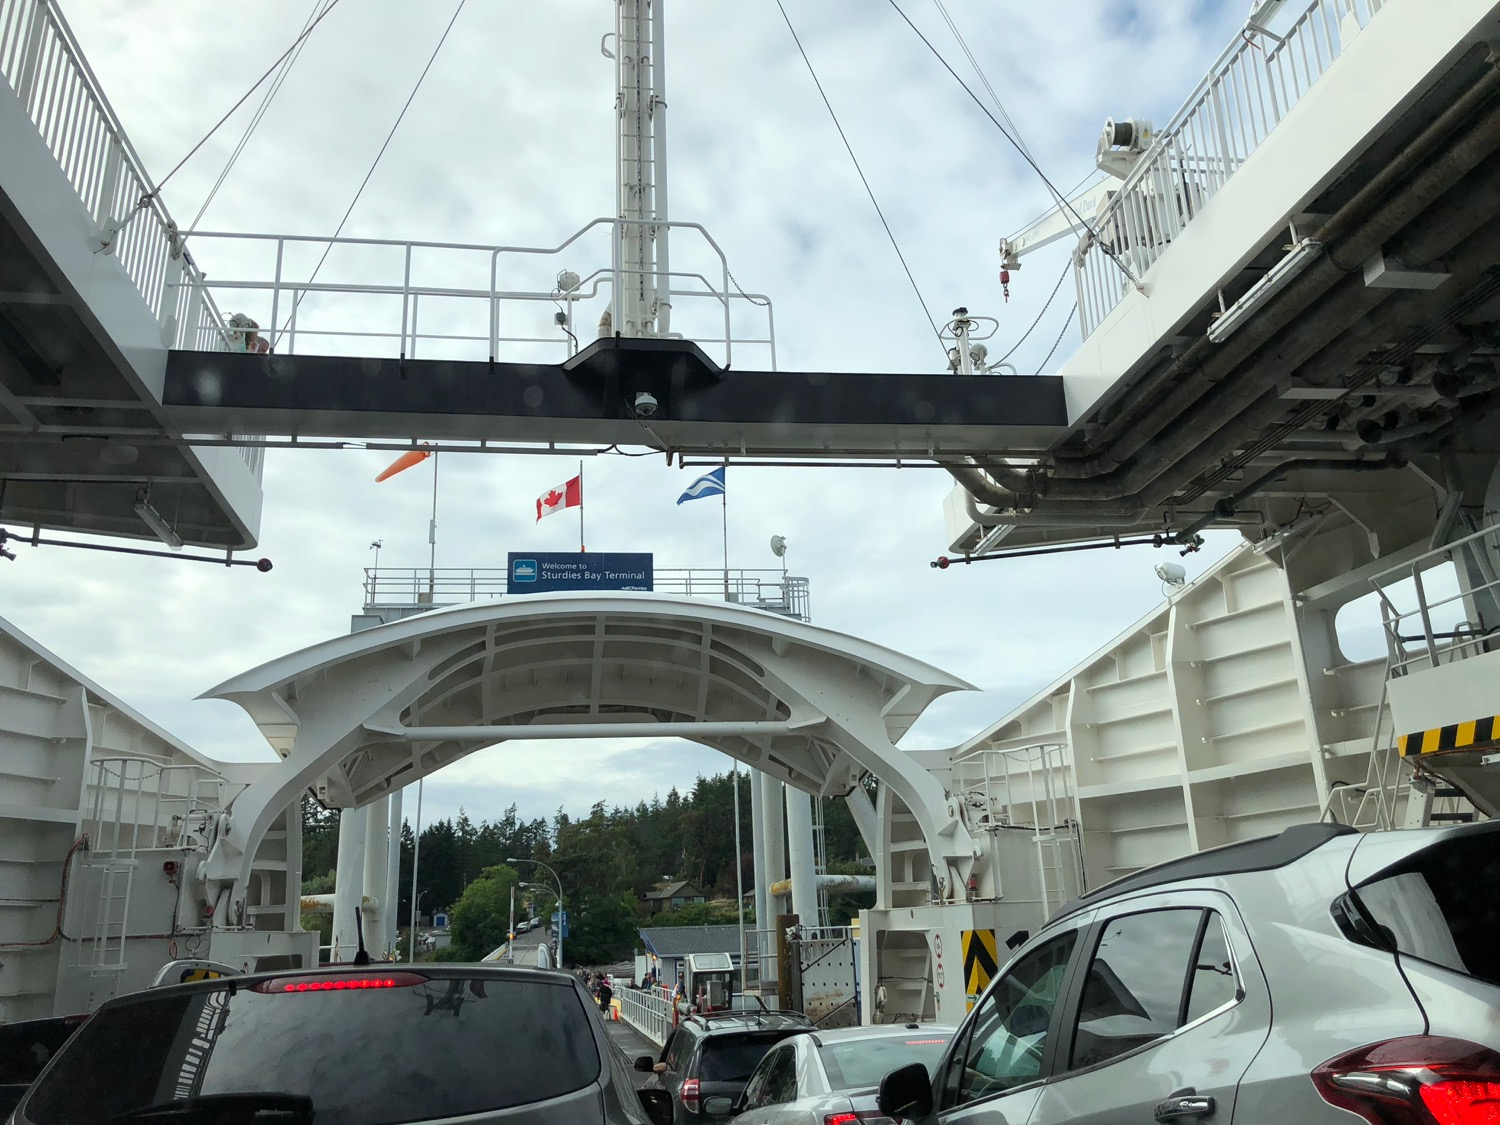 Welcome to Sturdies Bay – the ferry dock at Galiano Island!